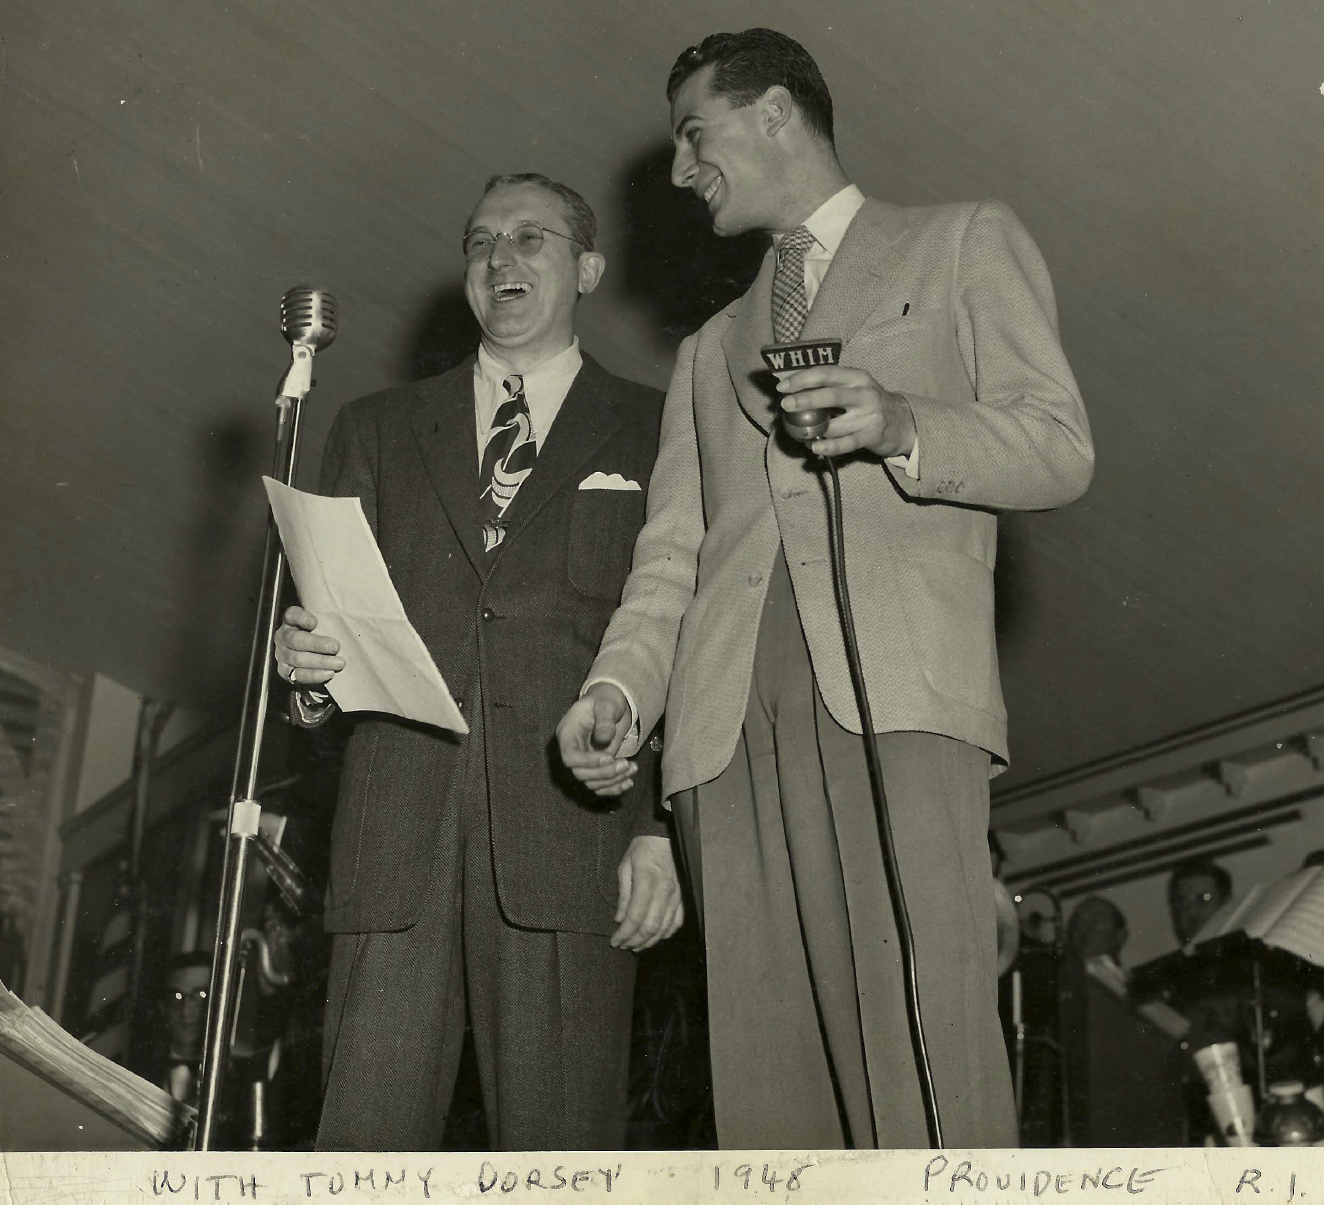 Jack Ellsworth with famous American jazz trombonist, composer, conductor and bandleader of the Big Band era- Tommy Dorsey - Providence, Rhode Island 1948